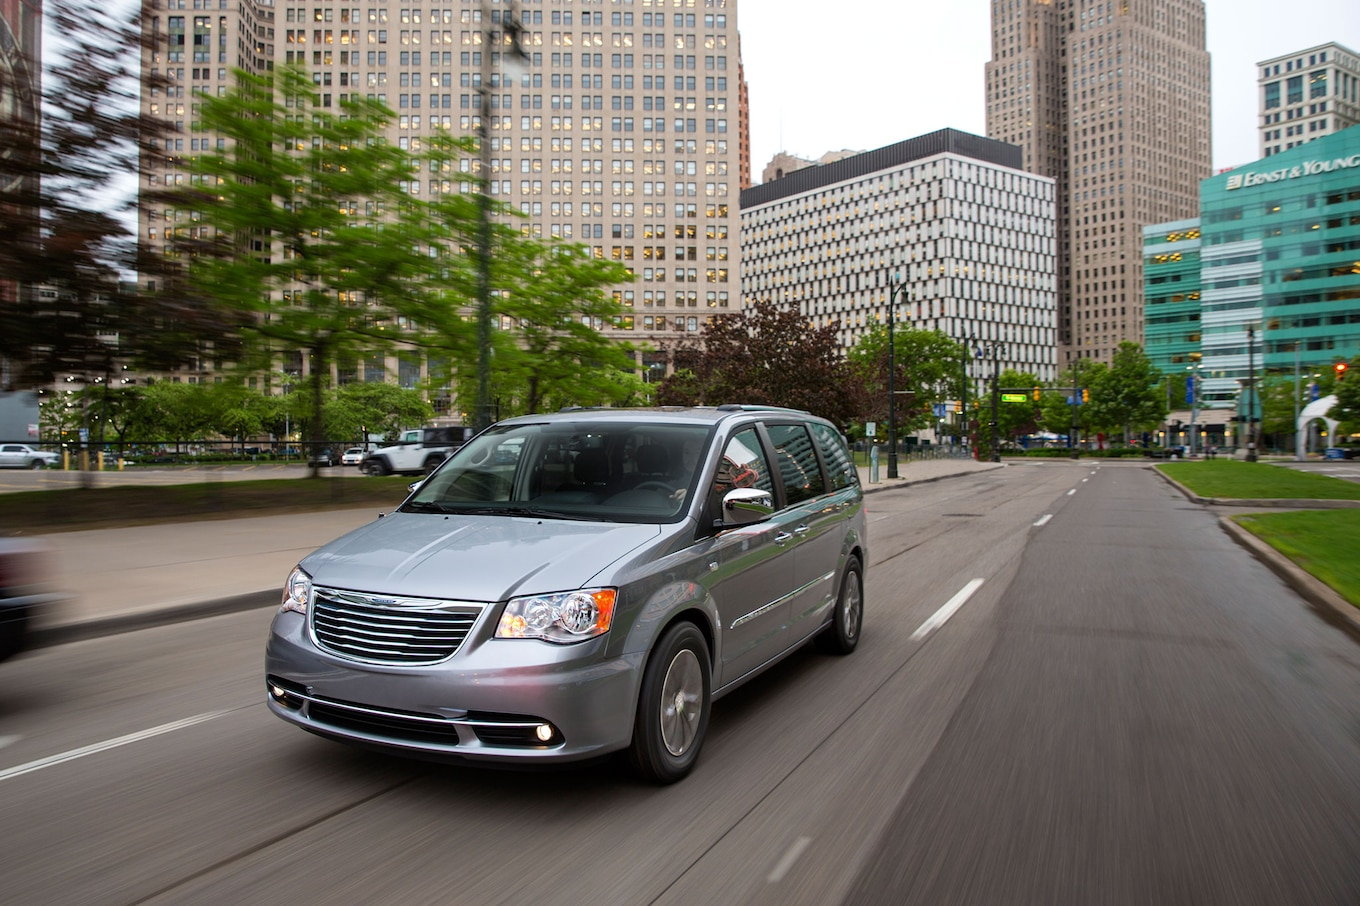 hight resolution of 2014 chrysler town and country 30th anniversary edition